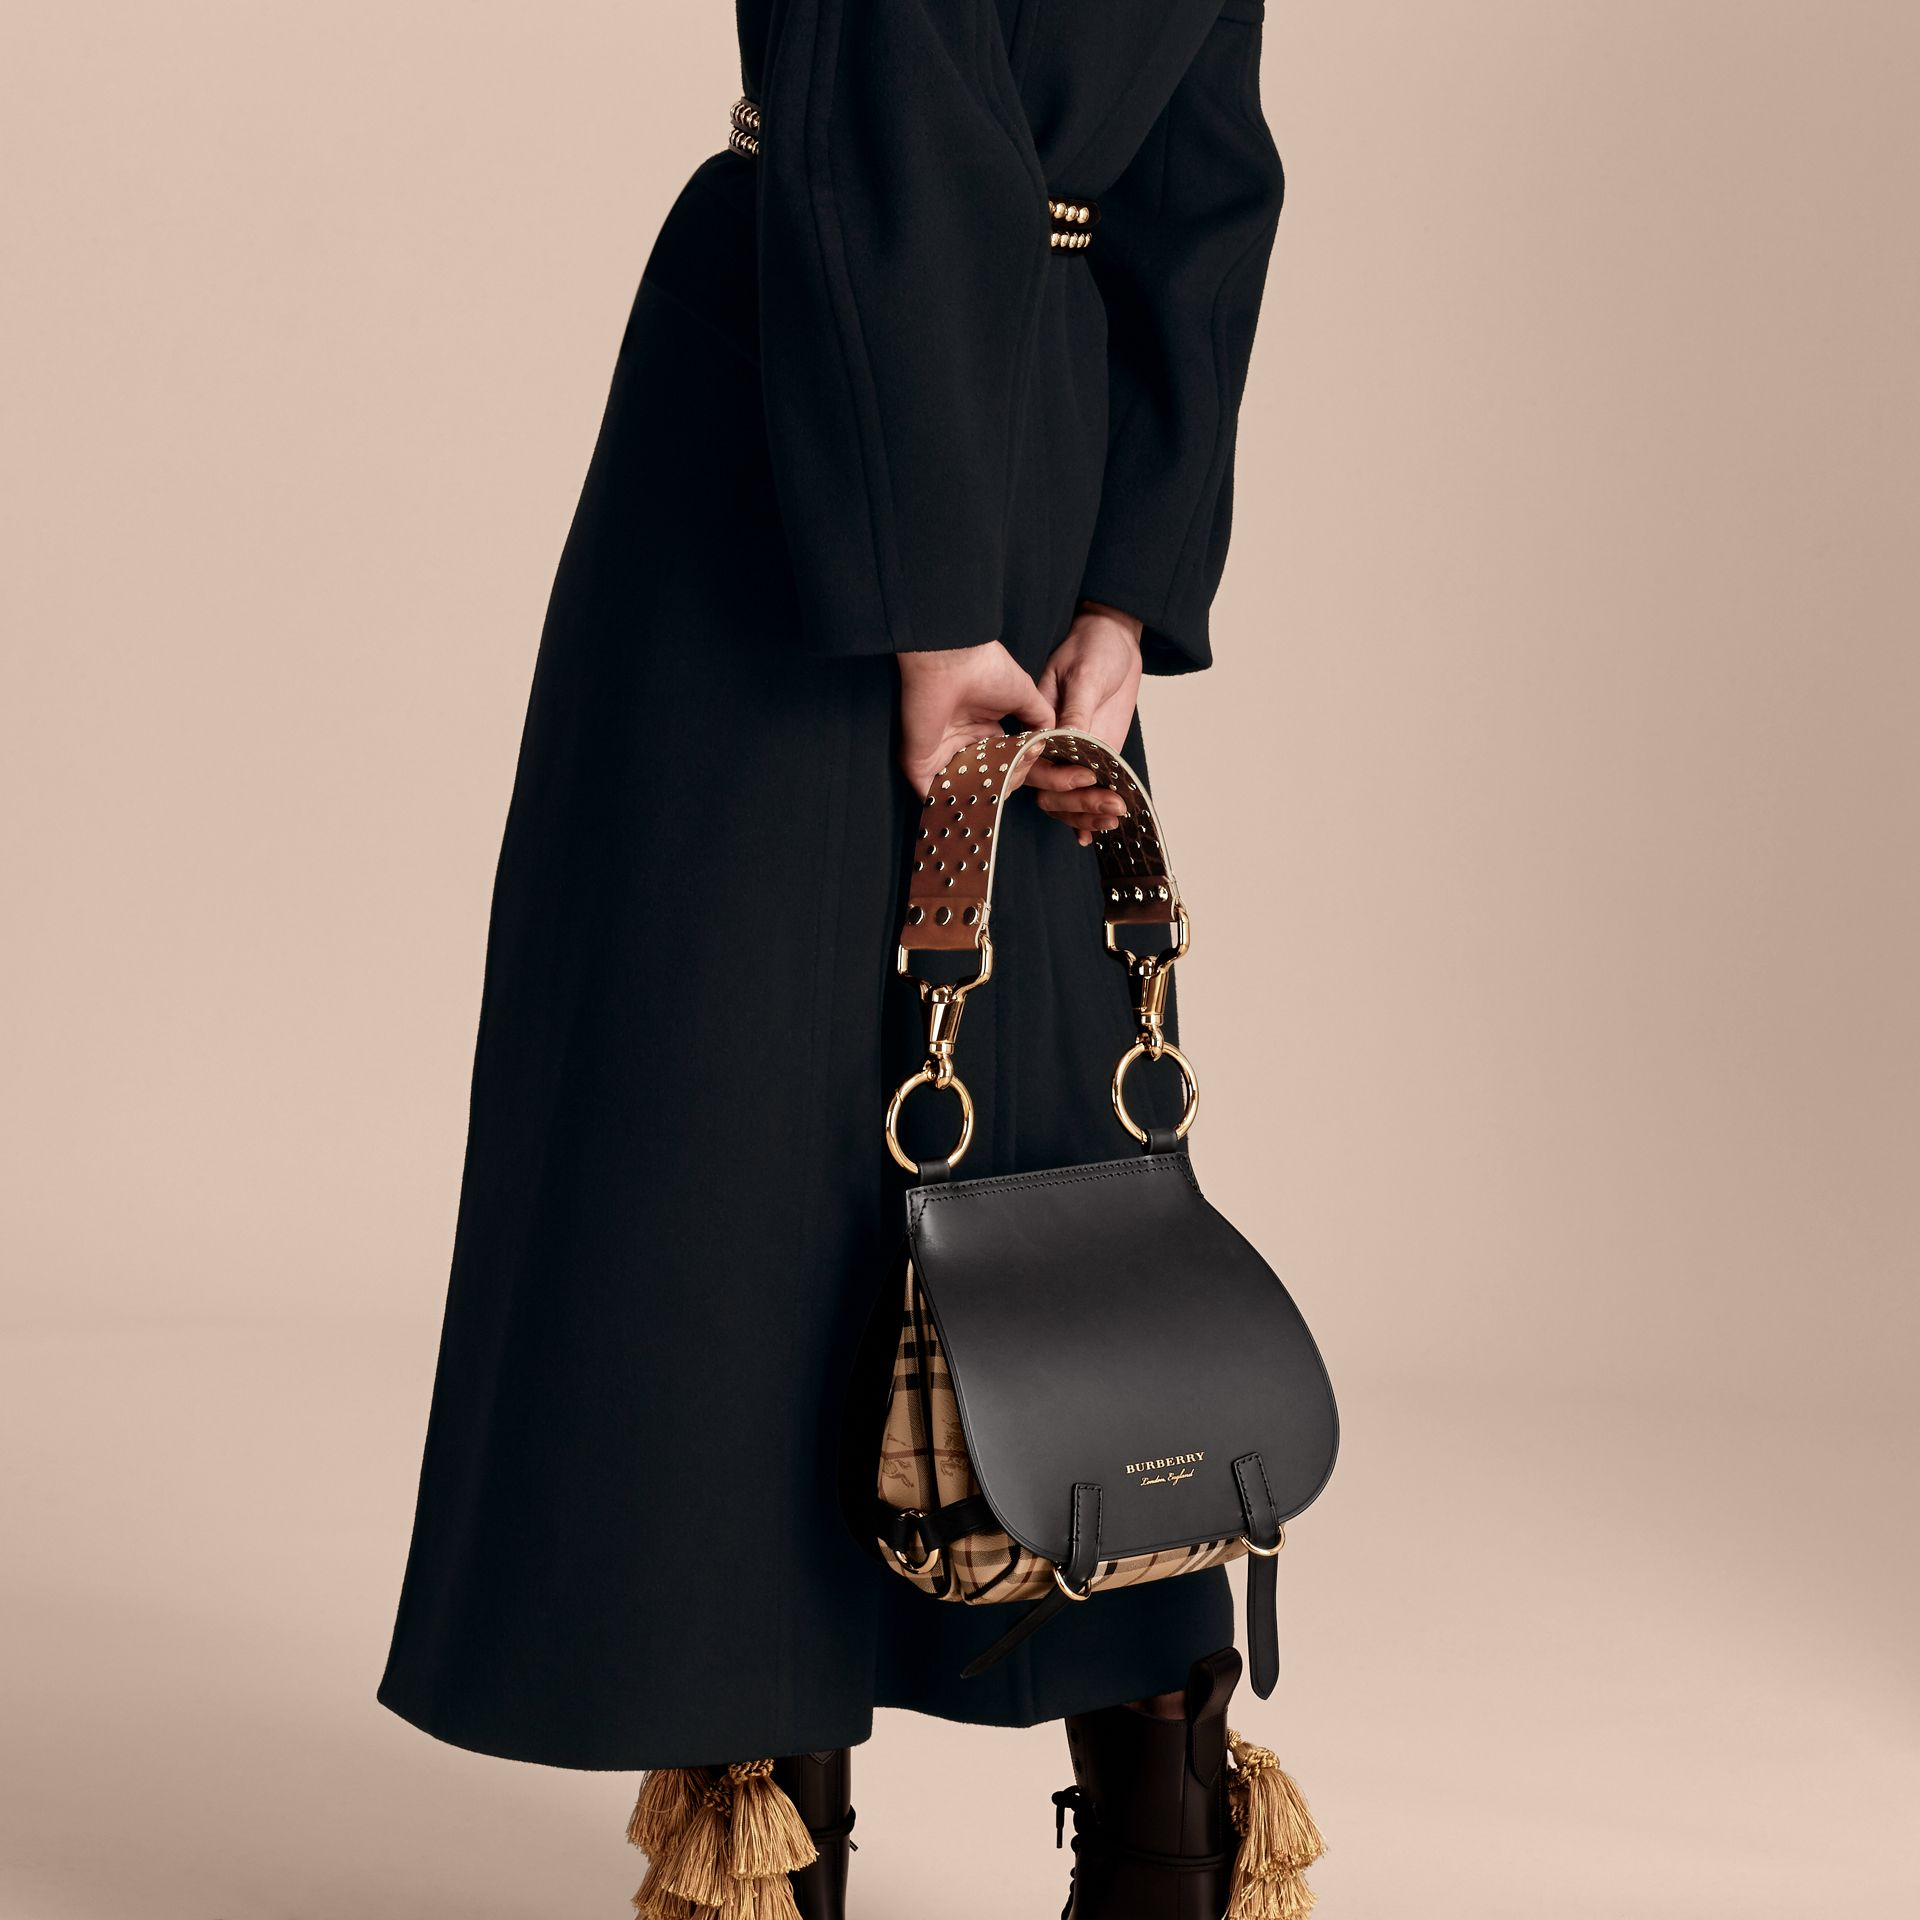 Borsa The Bridle in pelle, motivo Haymarket check e alligatore (Nero) - Donna | Burberry - immagine della galleria 3